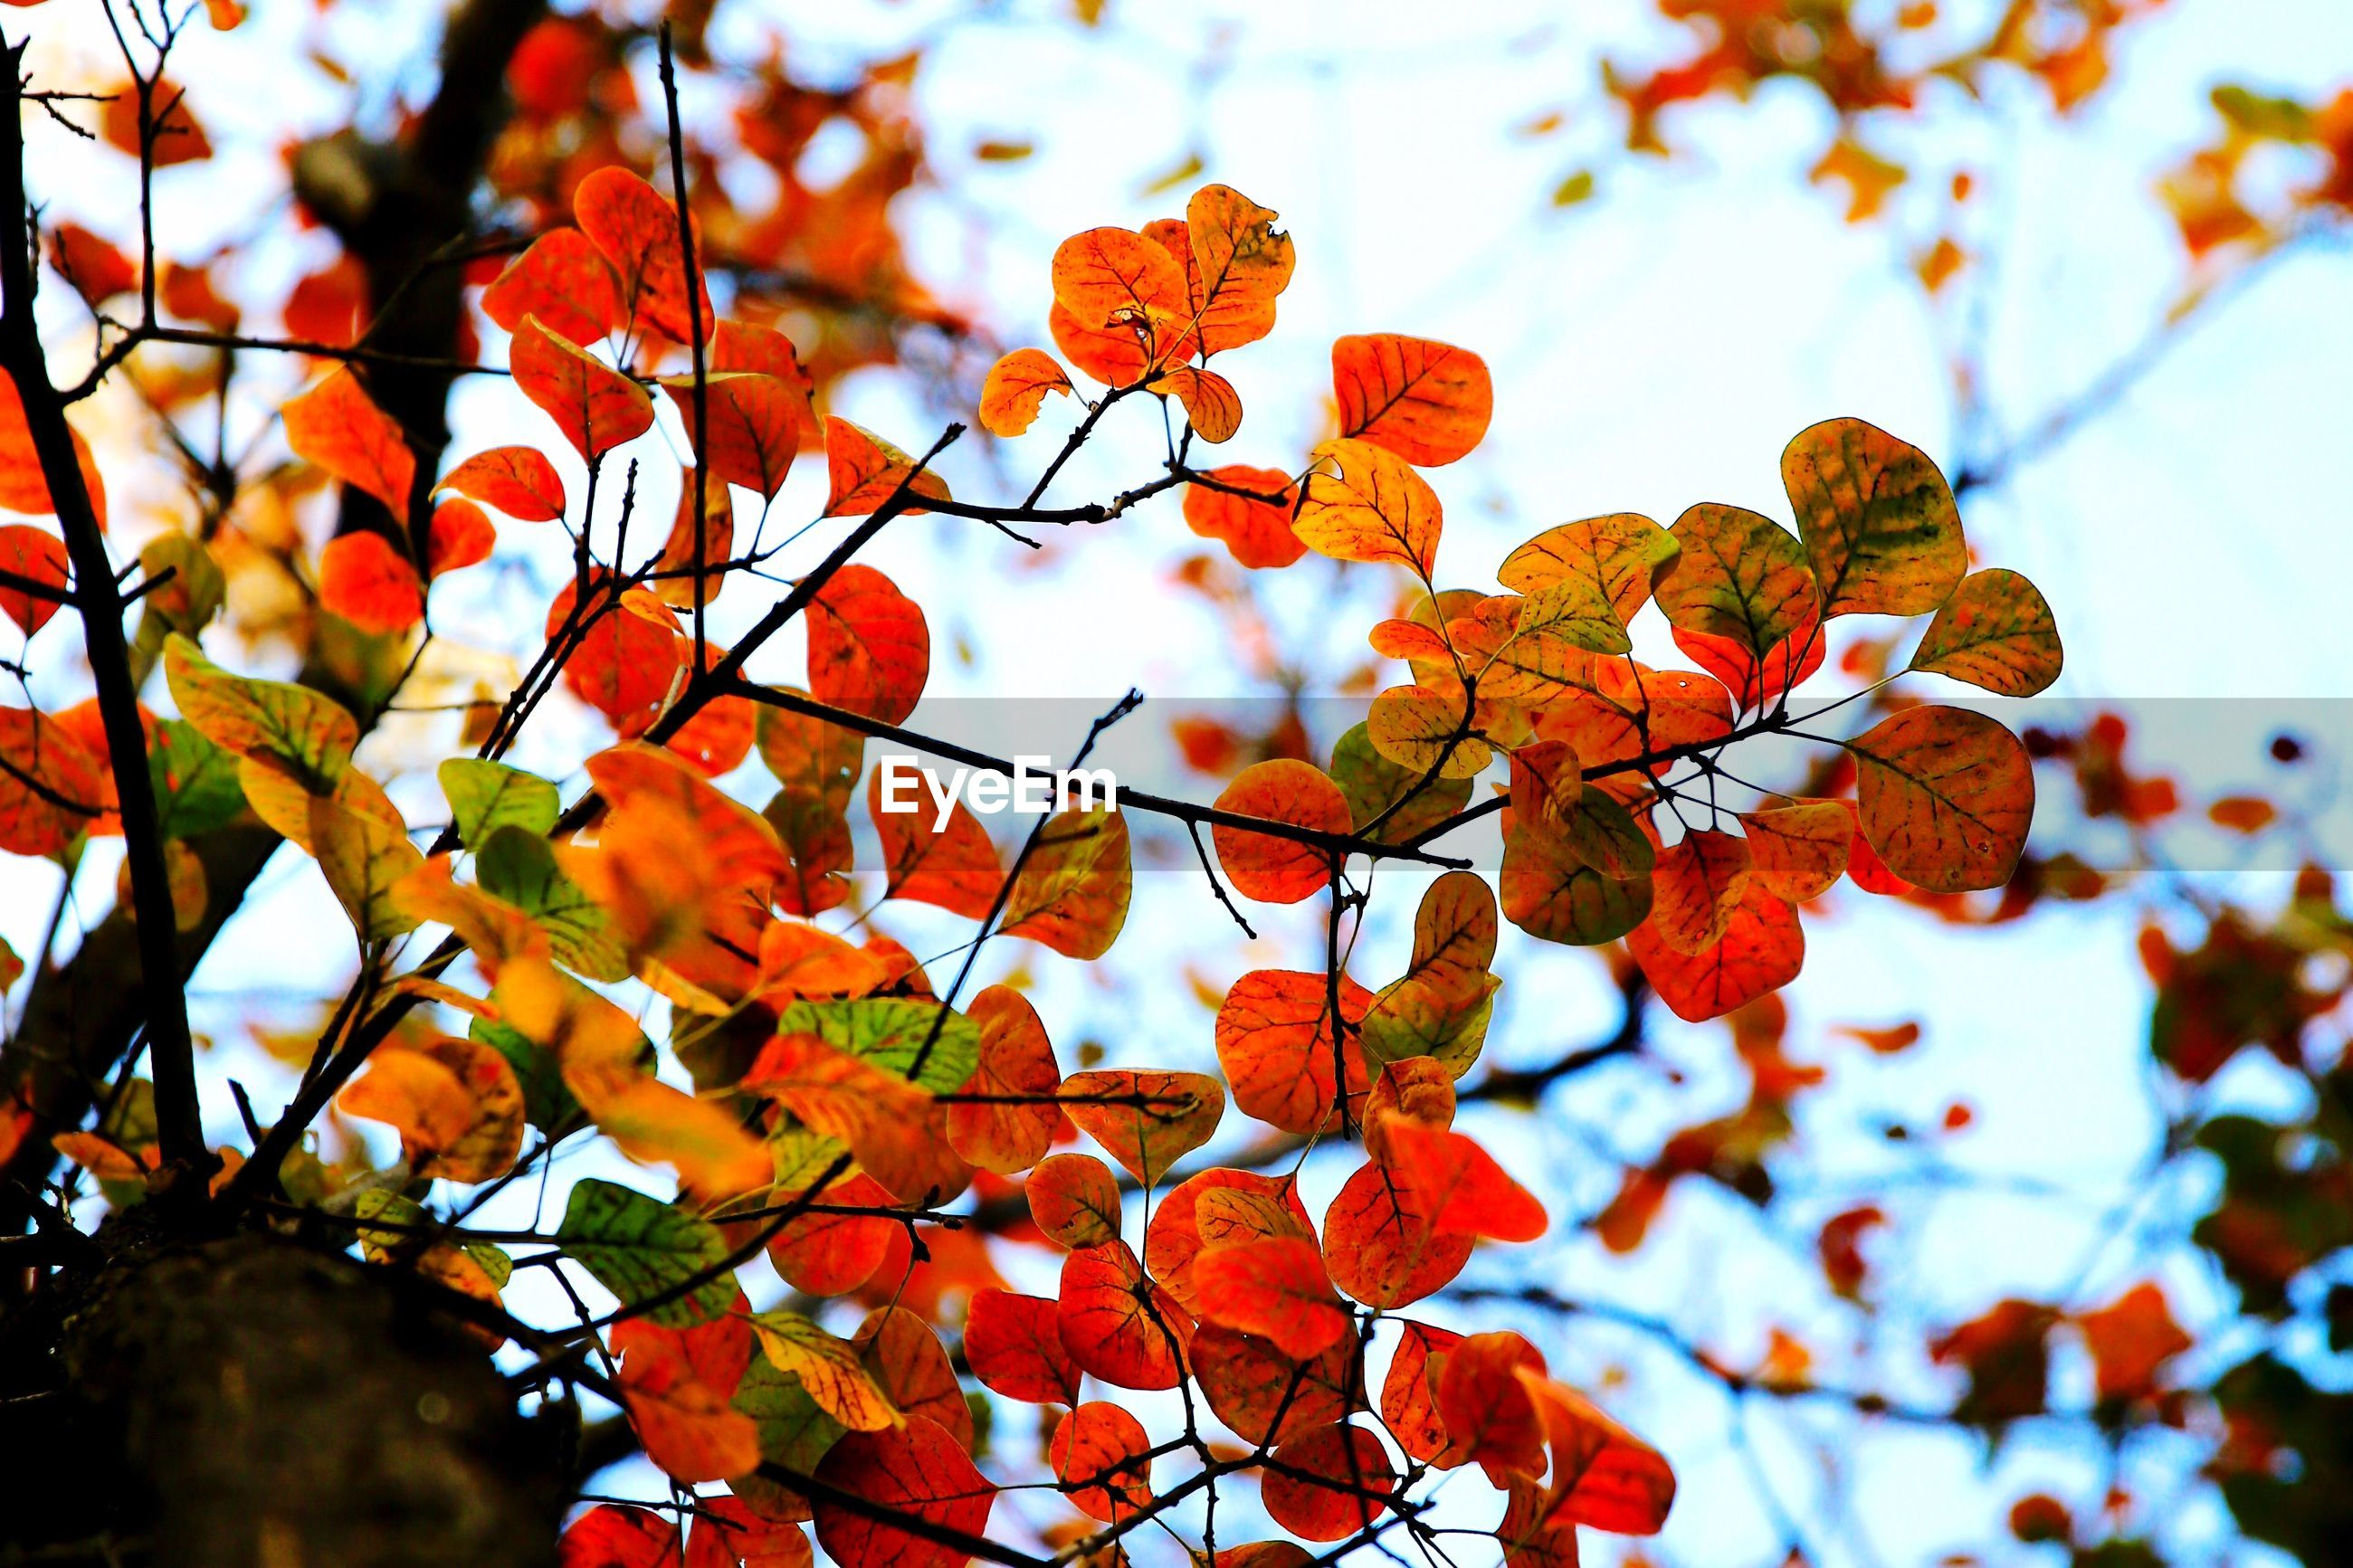 autumn, leaf, change, branch, season, low angle view, focus on foreground, close-up, tree, nature, growth, leaves, beauty in nature, sky, maple leaf, red, twig, orange color, day, outdoors